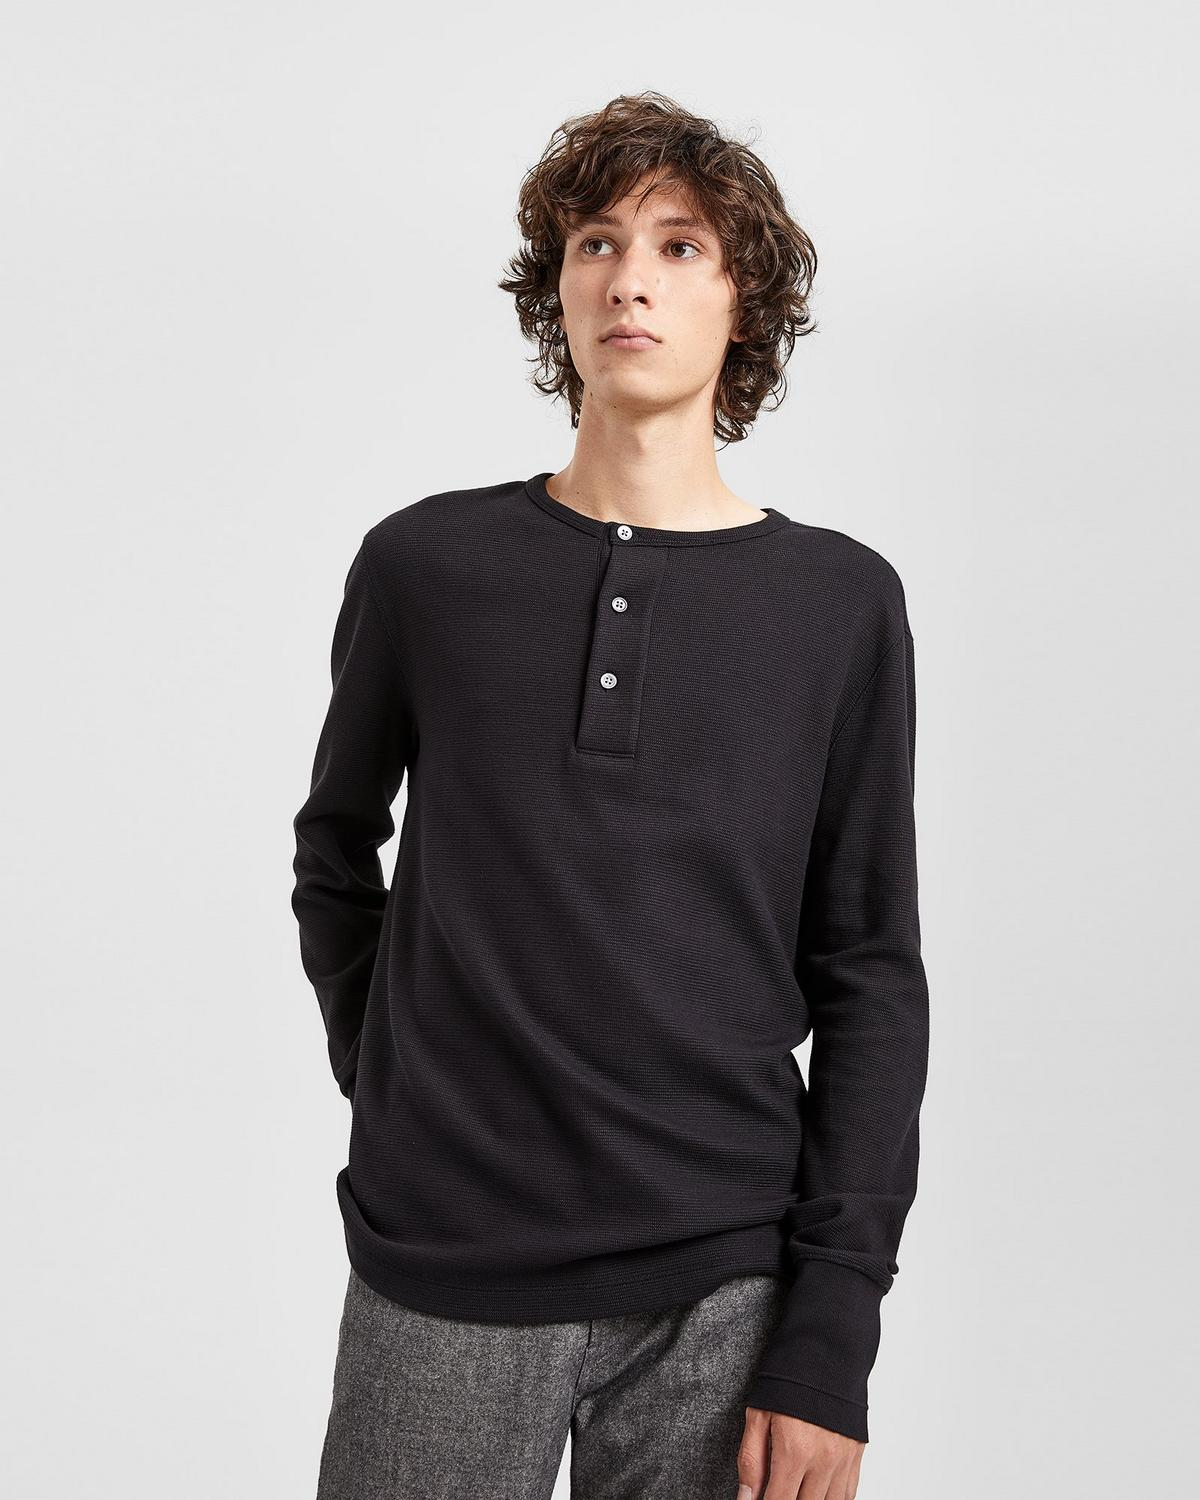 Cotton waffle henley shirt theory for Whats a henley shirt